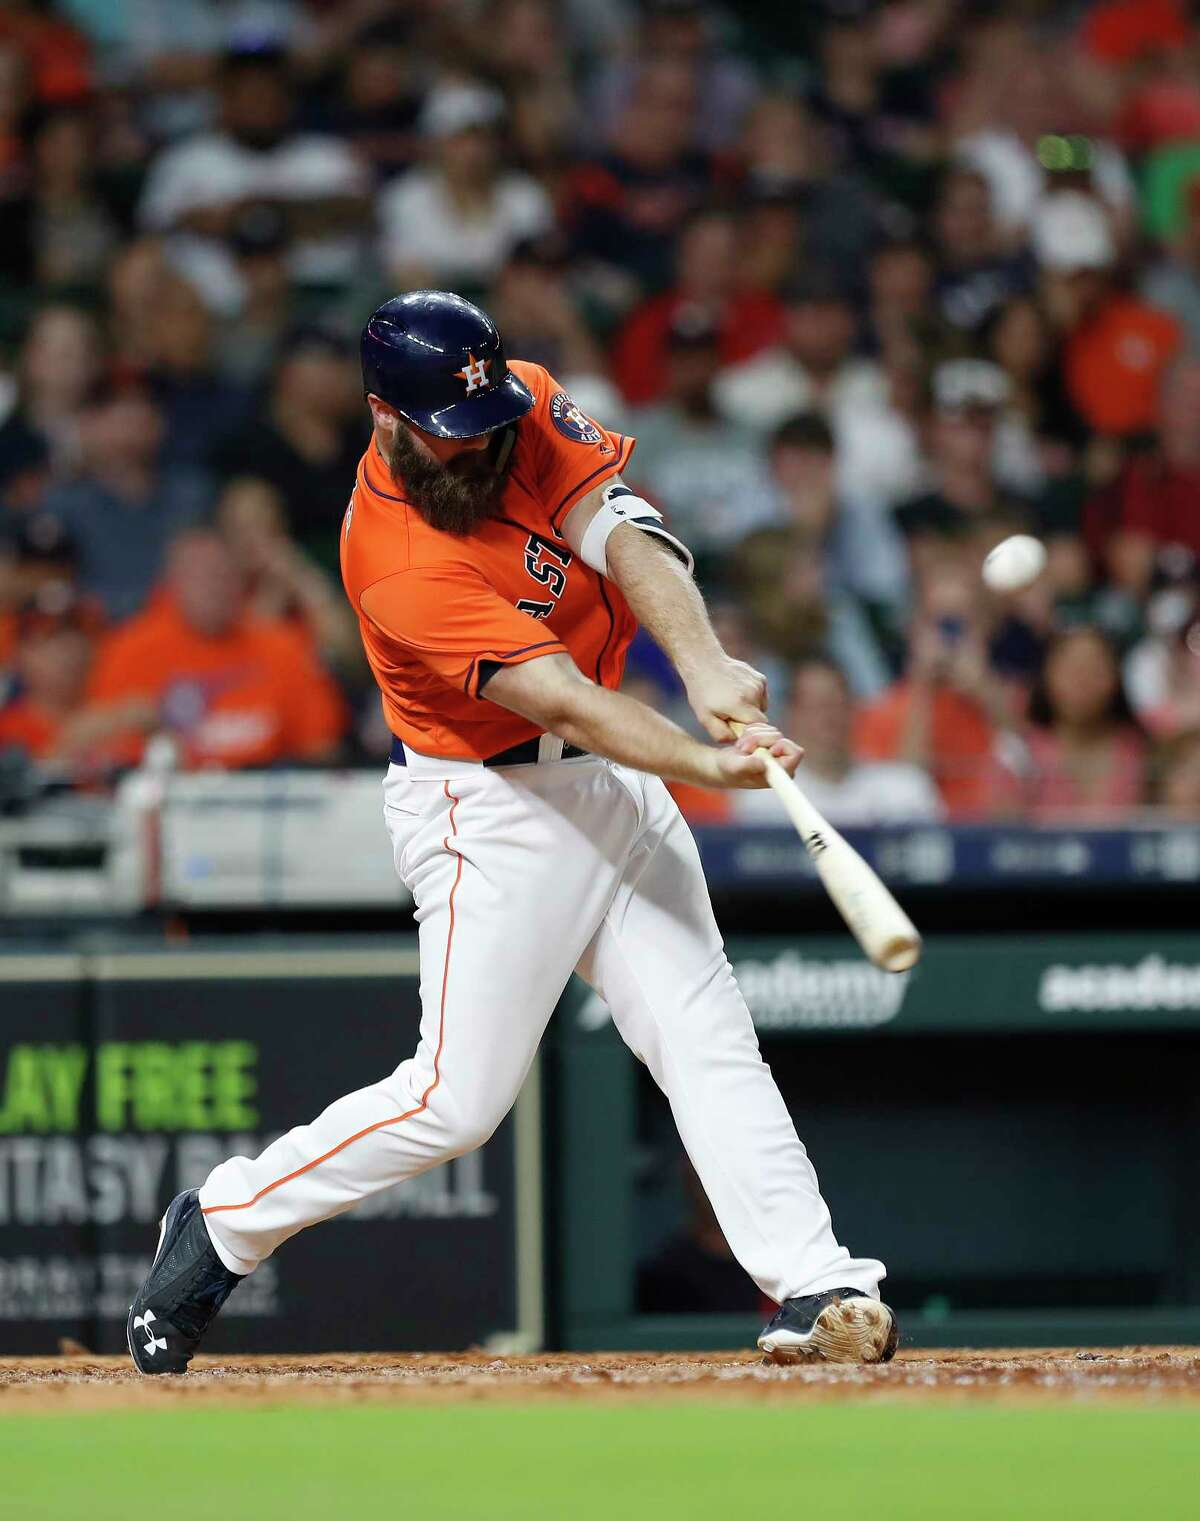 Houston Astros Evan Gattis (11) hits a sacrifice fly to score Carlos Correa during the eighth inning of an MLB baseball game at Minute Maid Park, Friday, May 18, 2018, in Houston.